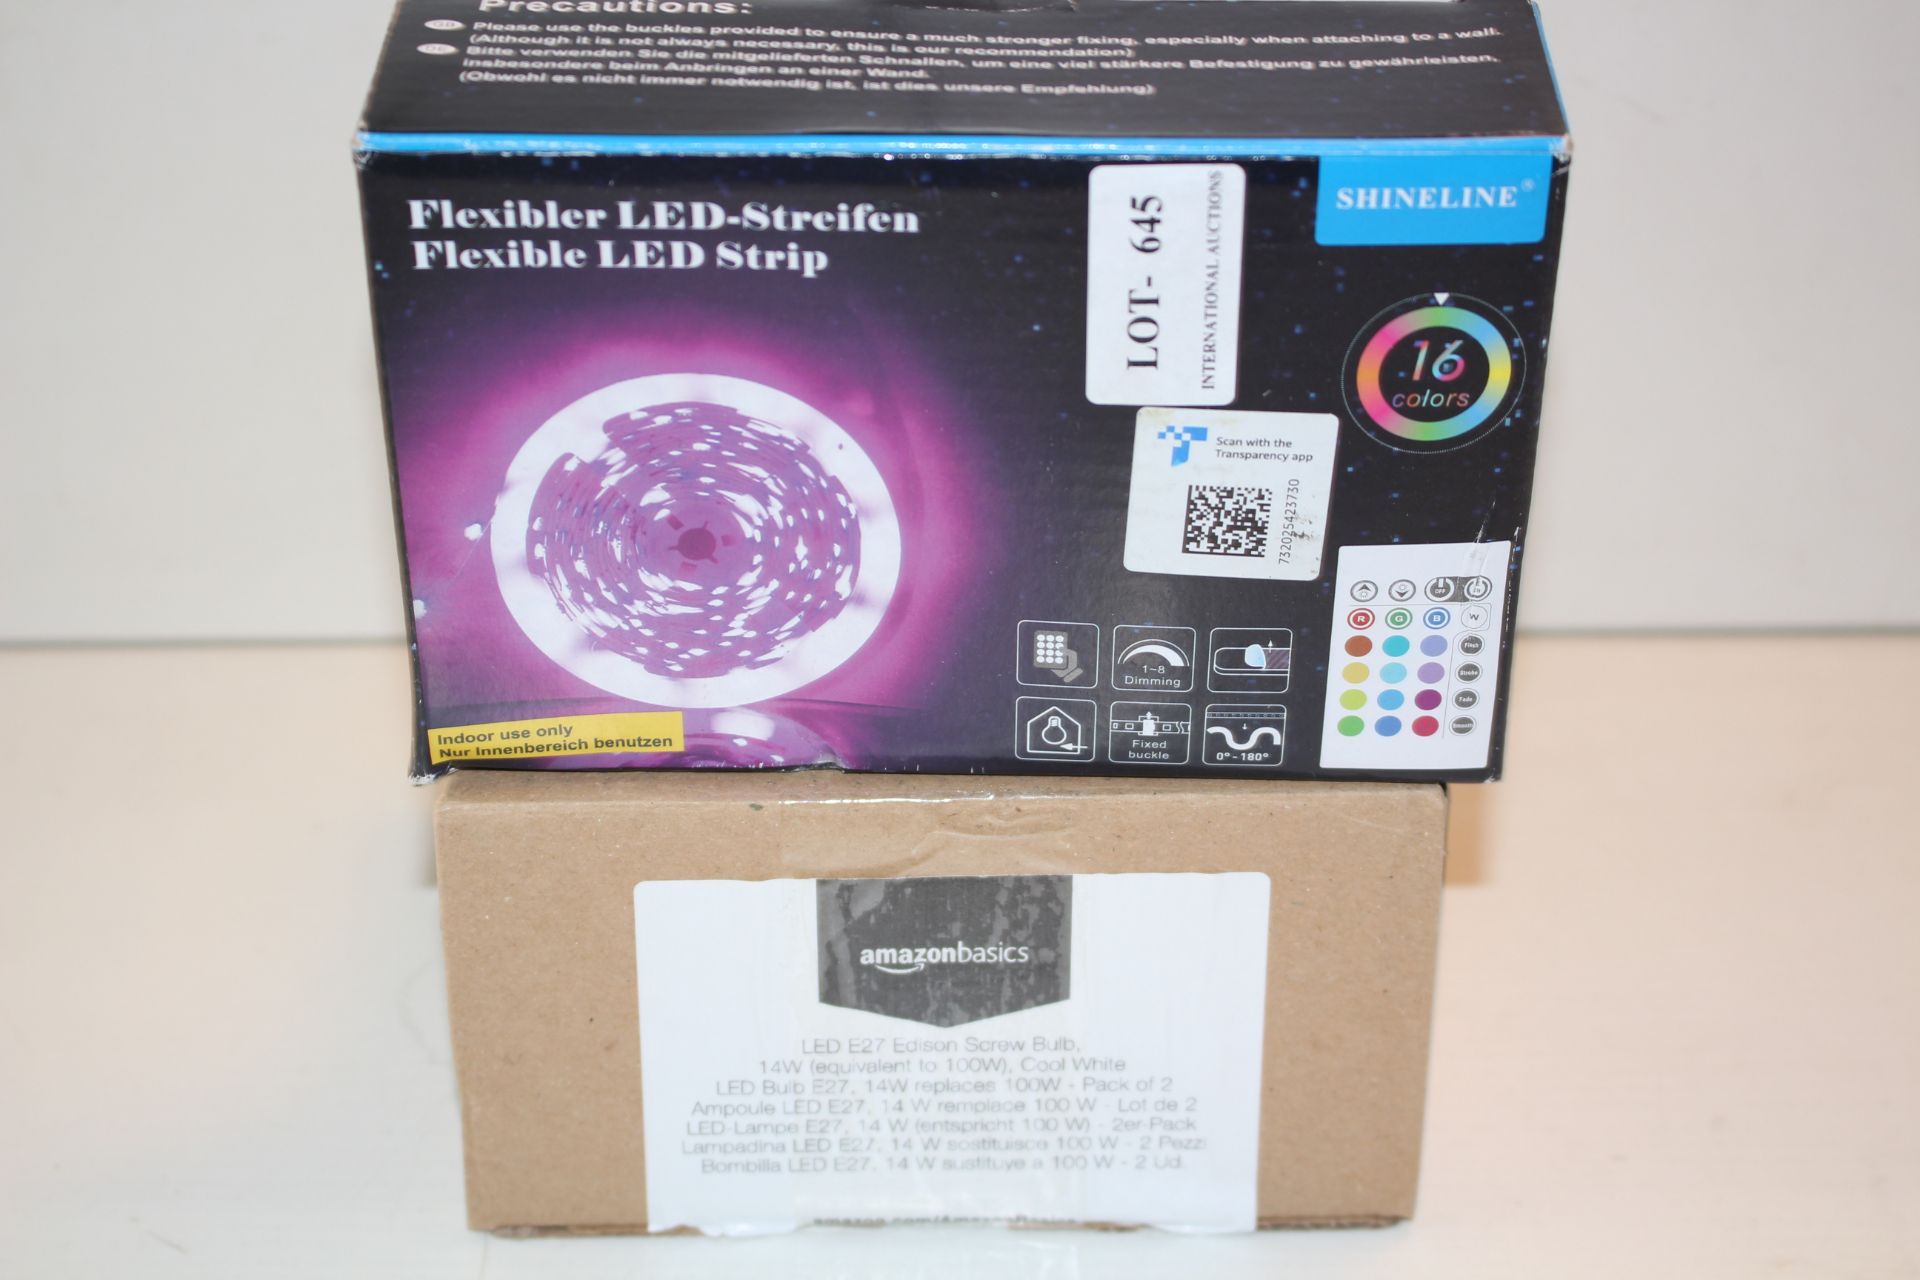 X2 BOXED ITEMS INCLUDING LED EDISON SCREW BULB AND LED STRIPCondition ReportAppraisal Available on